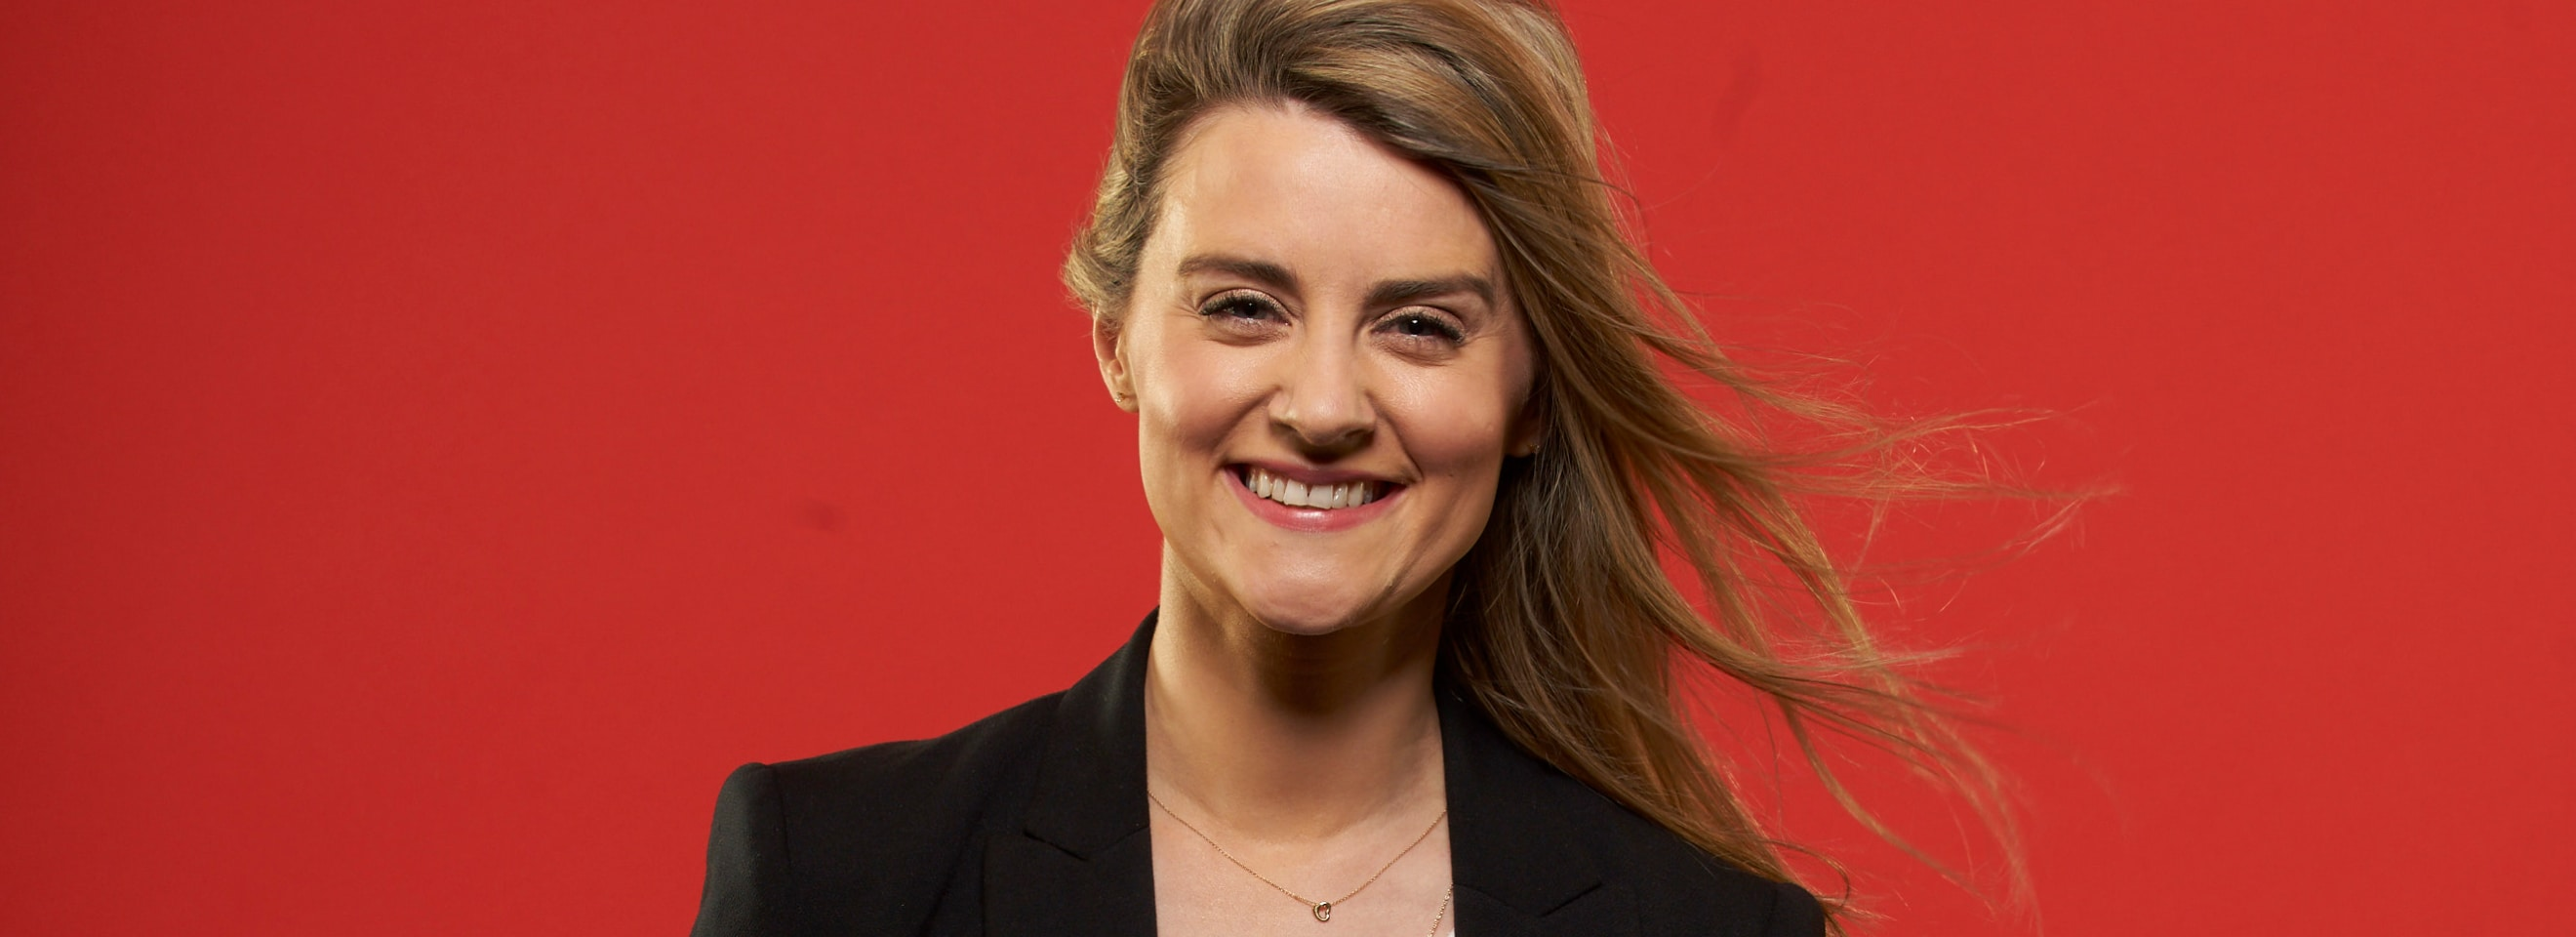 Woman in black blazer smiling on a red background.